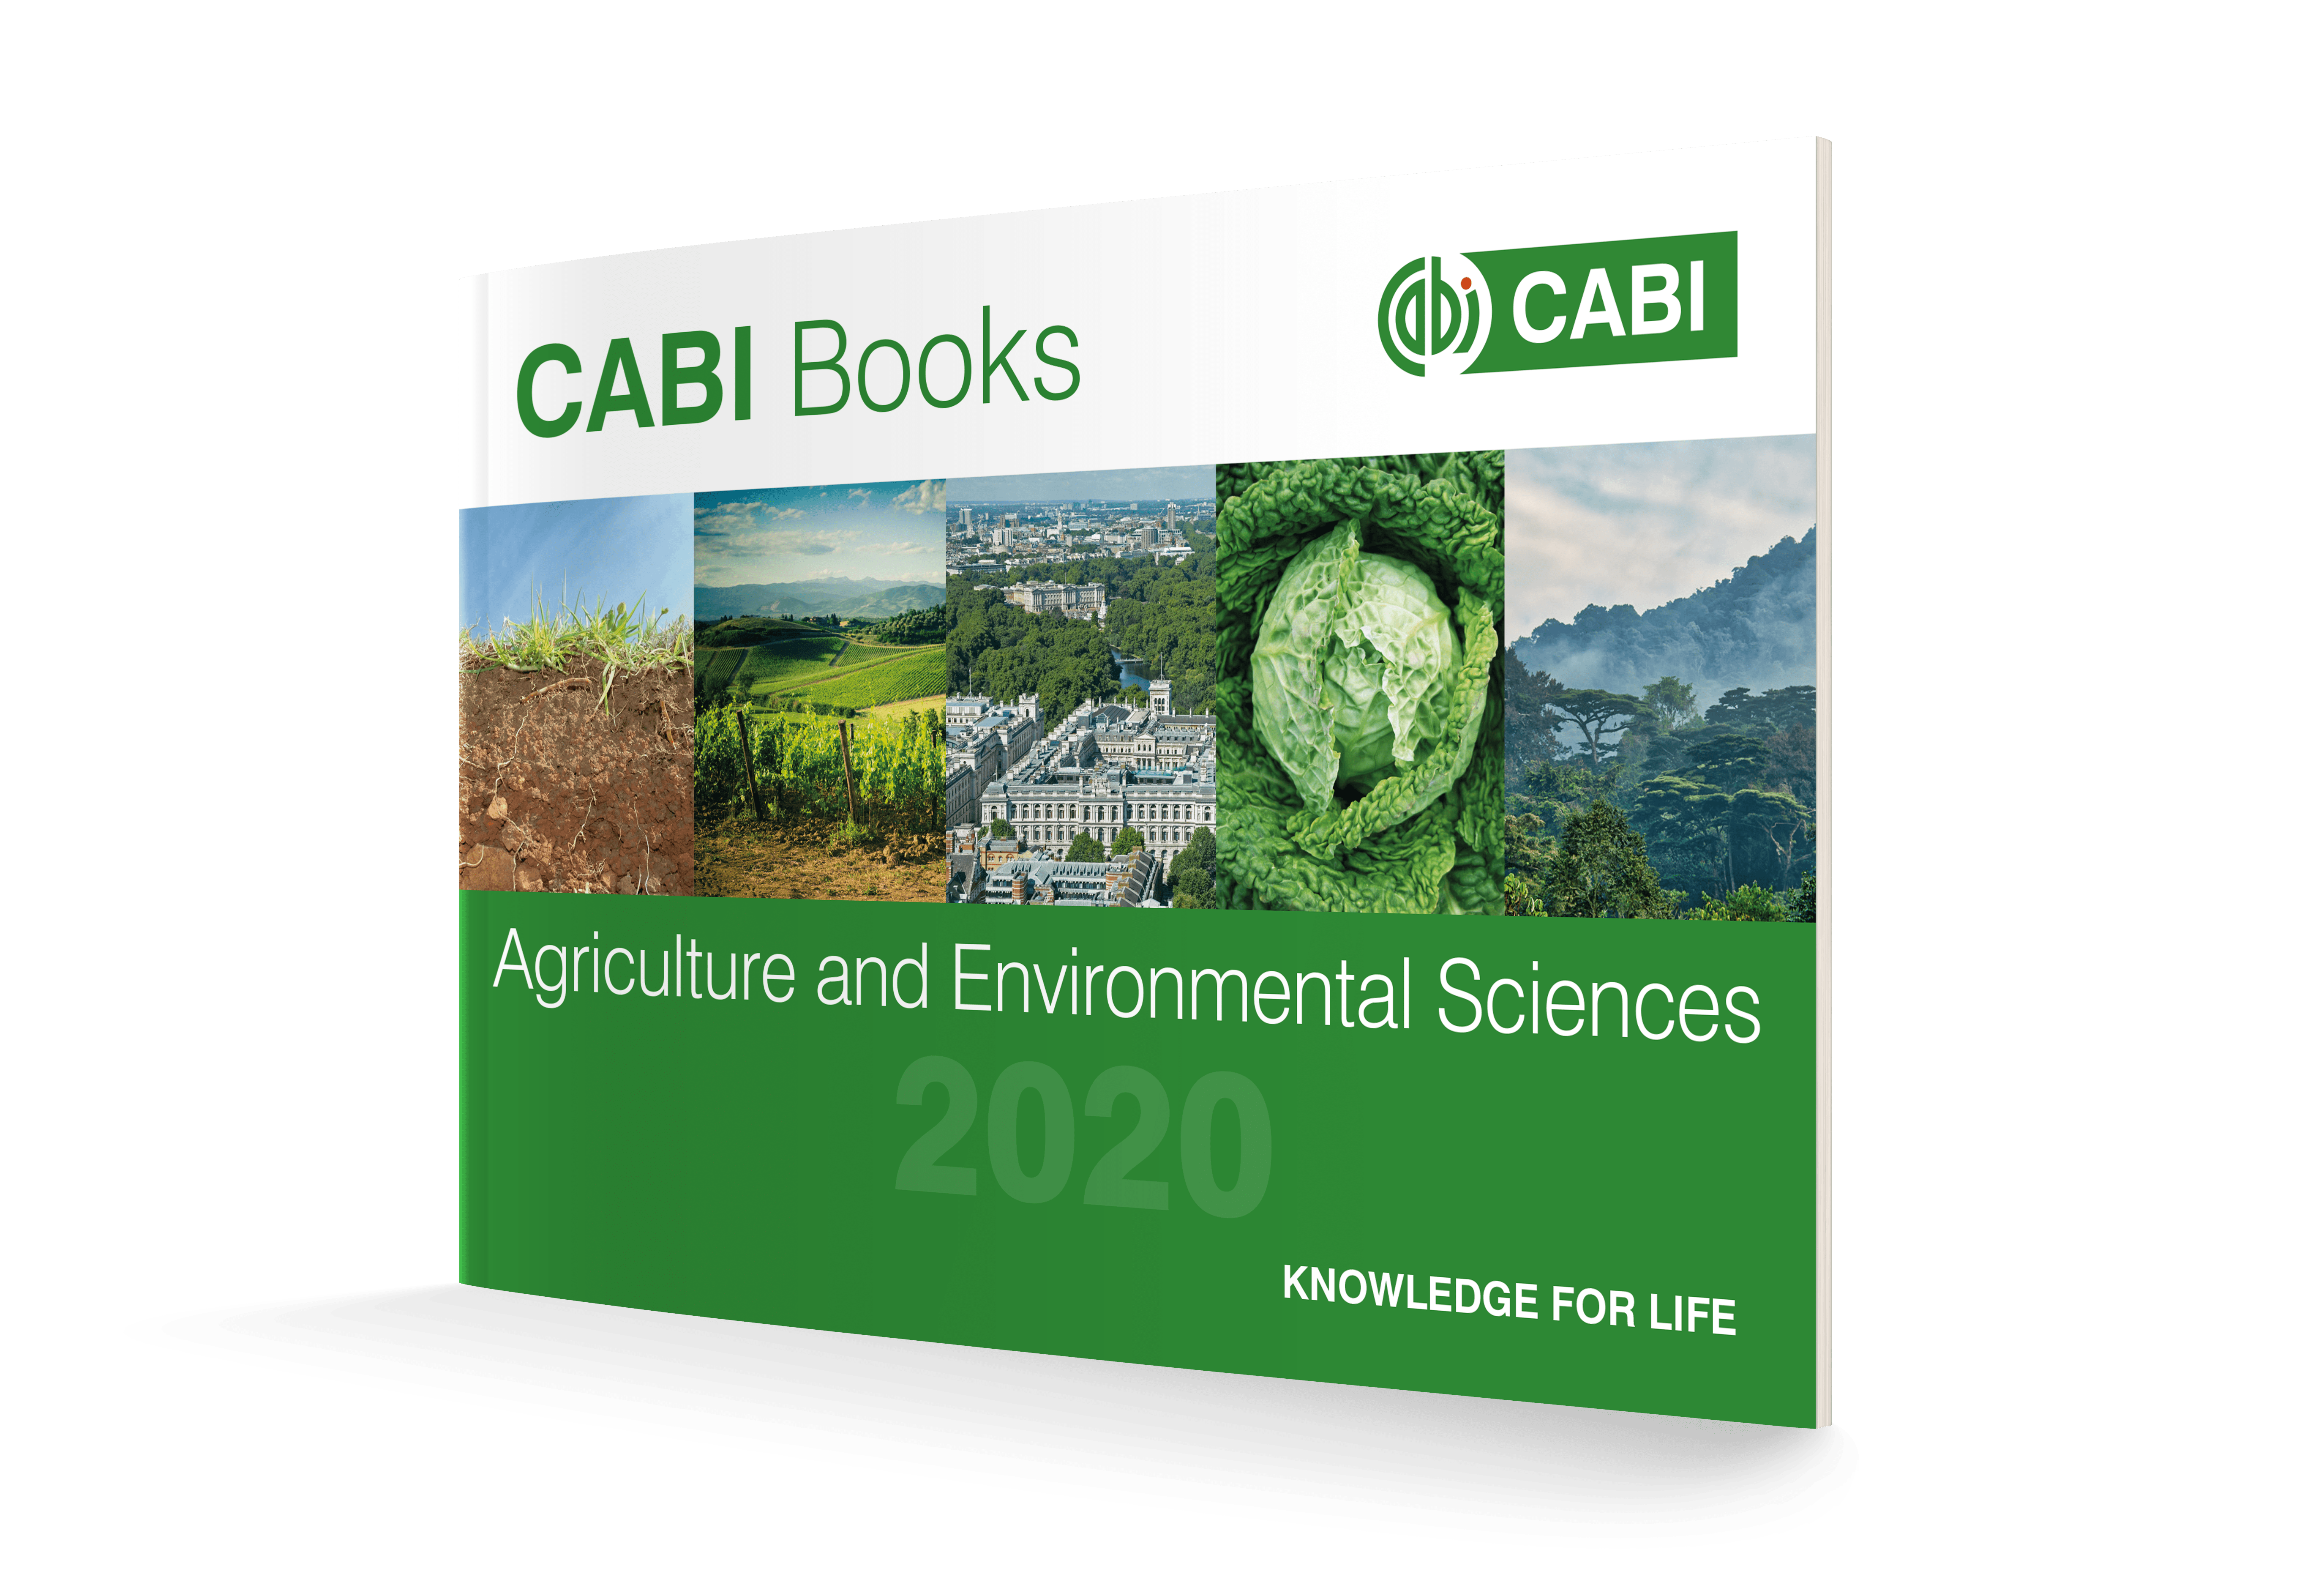 Agriculture and Environmental Sciences brochure